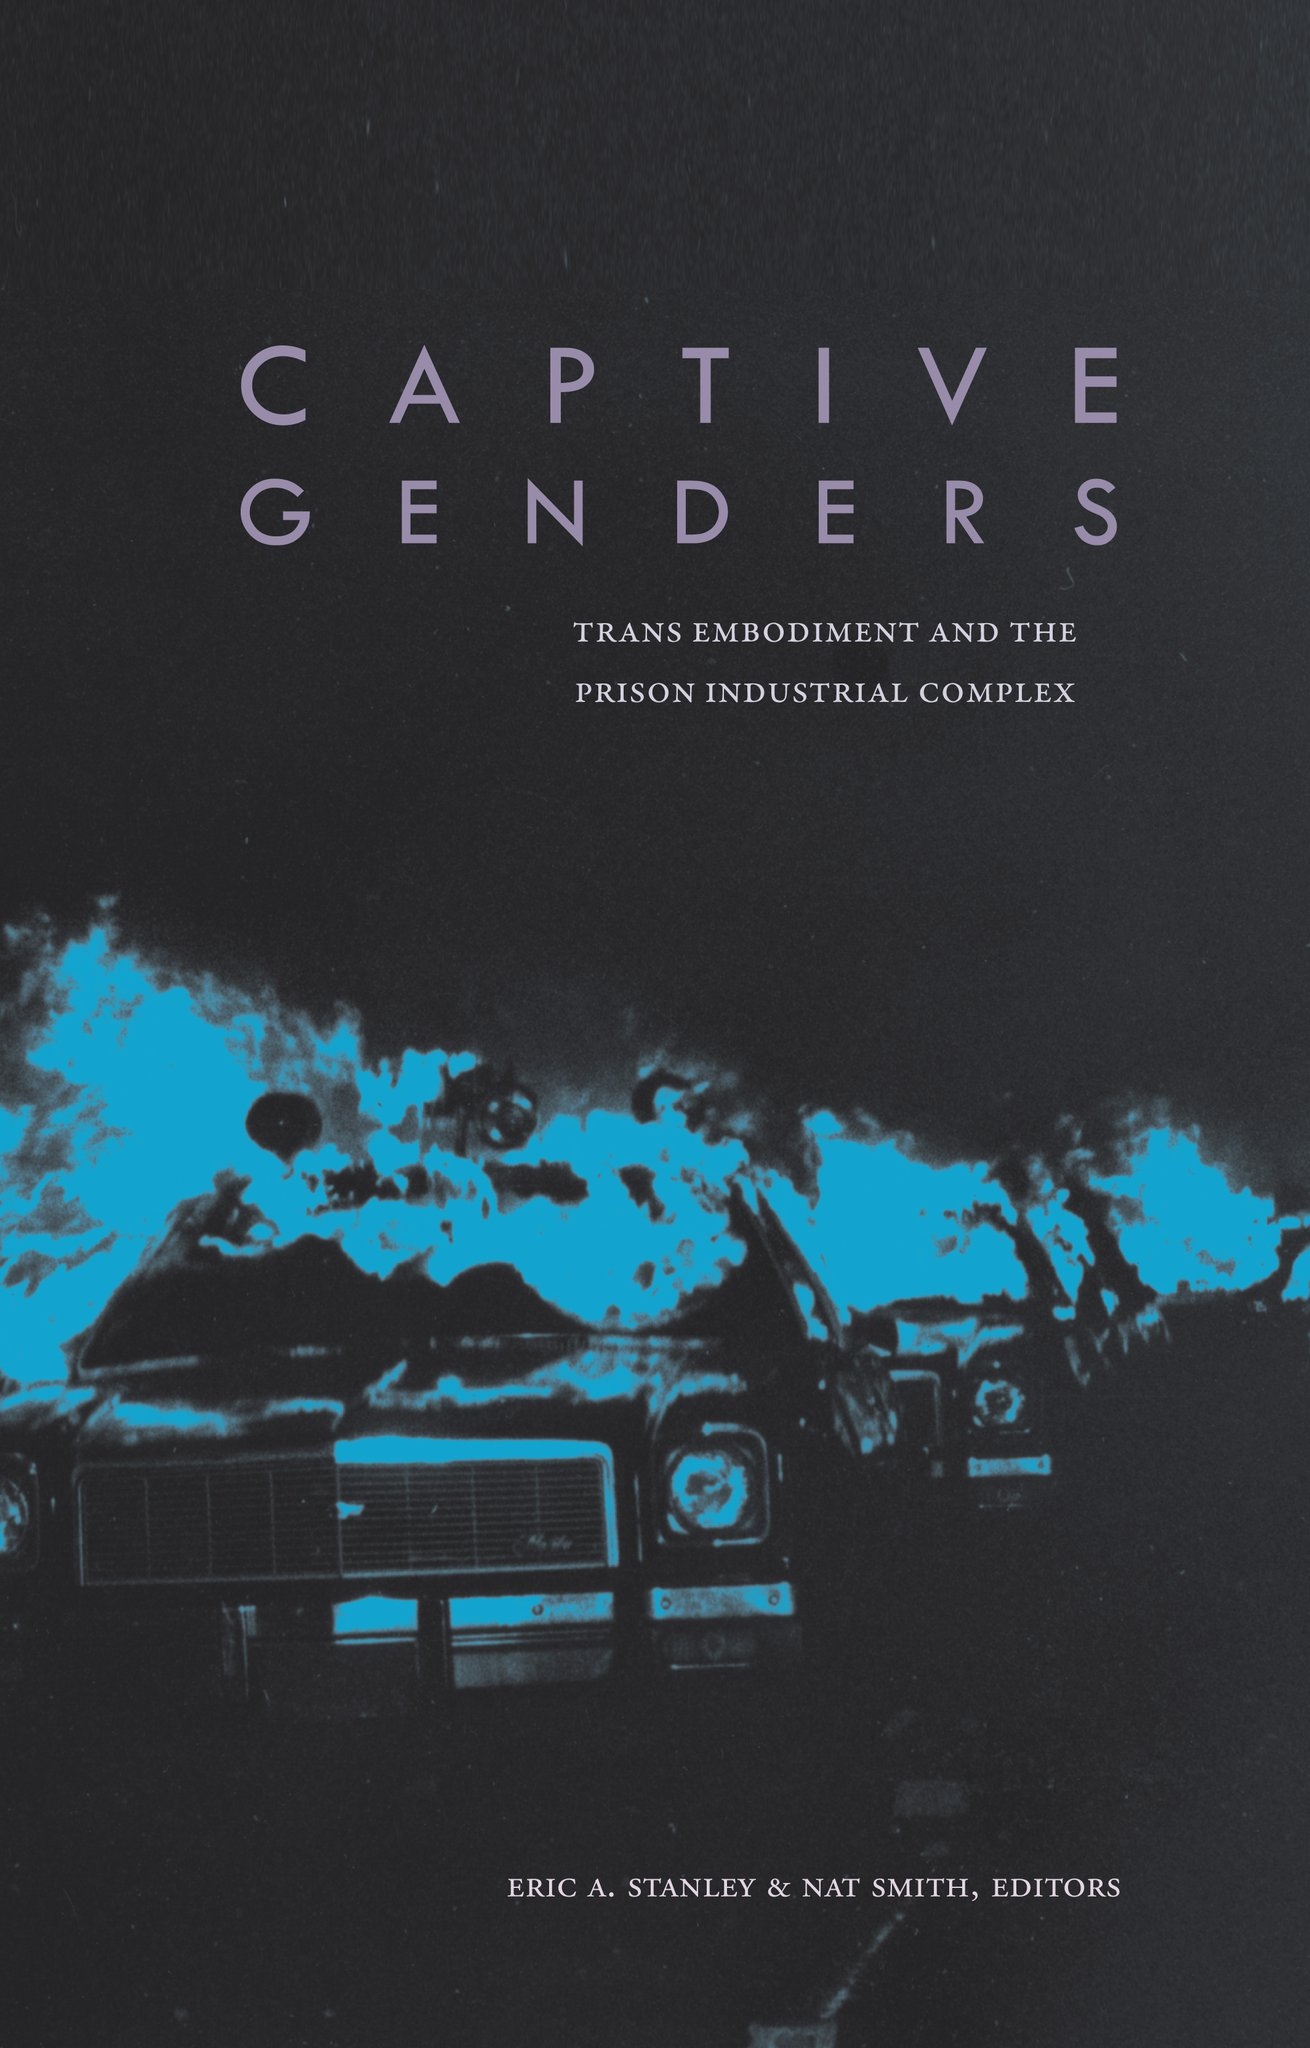 Captive Genders Edited by Eric A. Stanley and Nat Smith.jpg